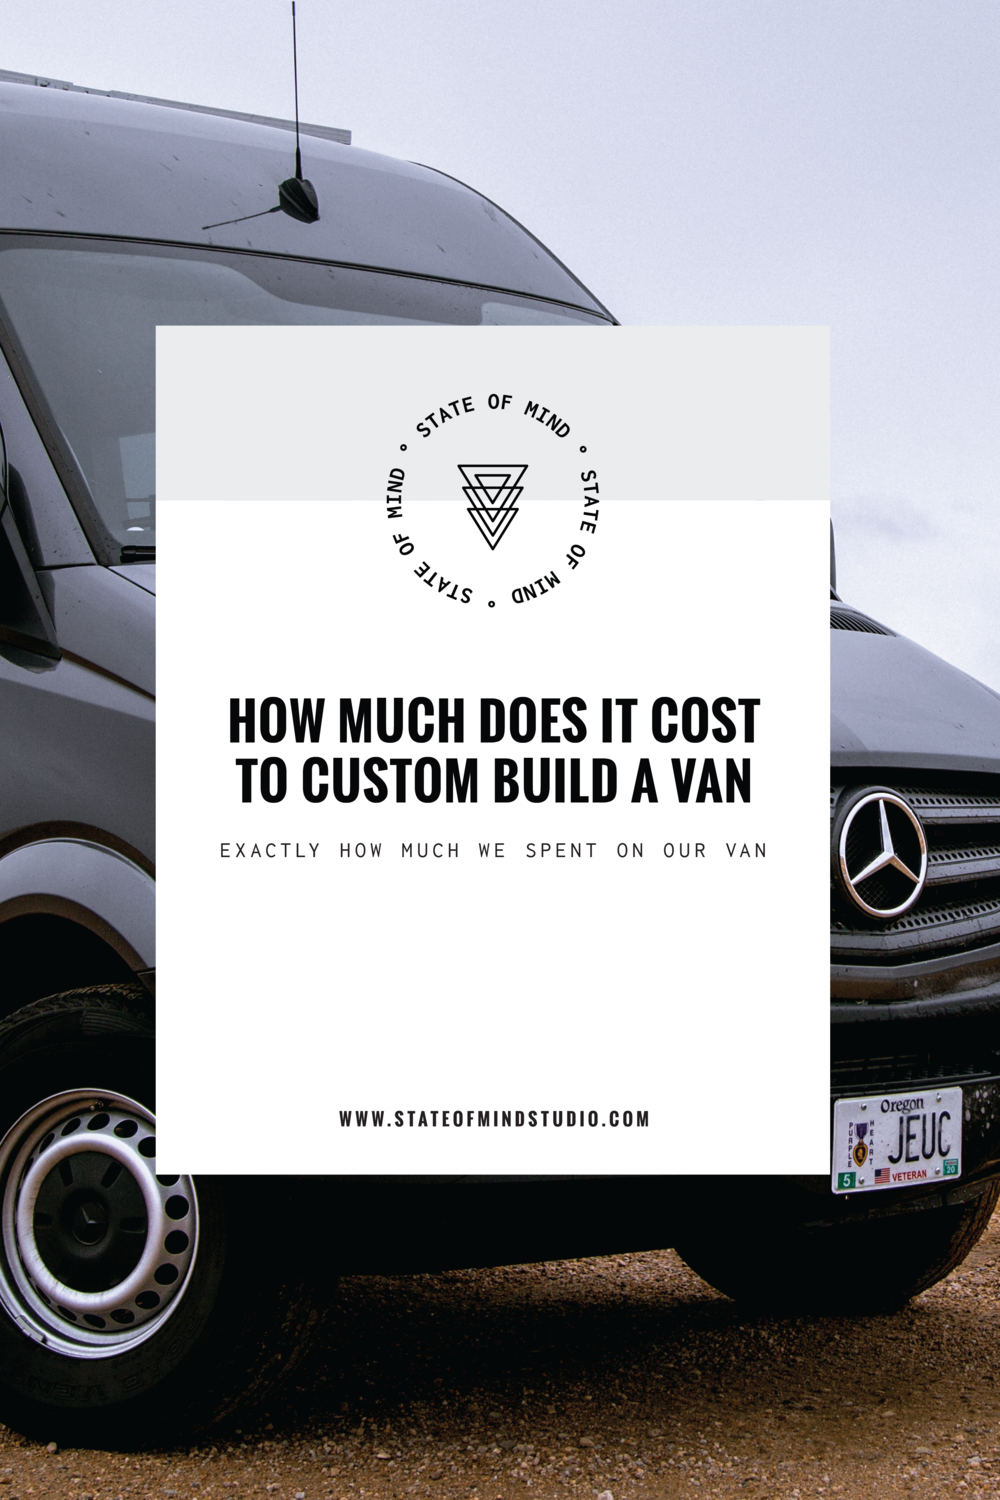 how-much-does-it-cost-to-custom-build-a-van